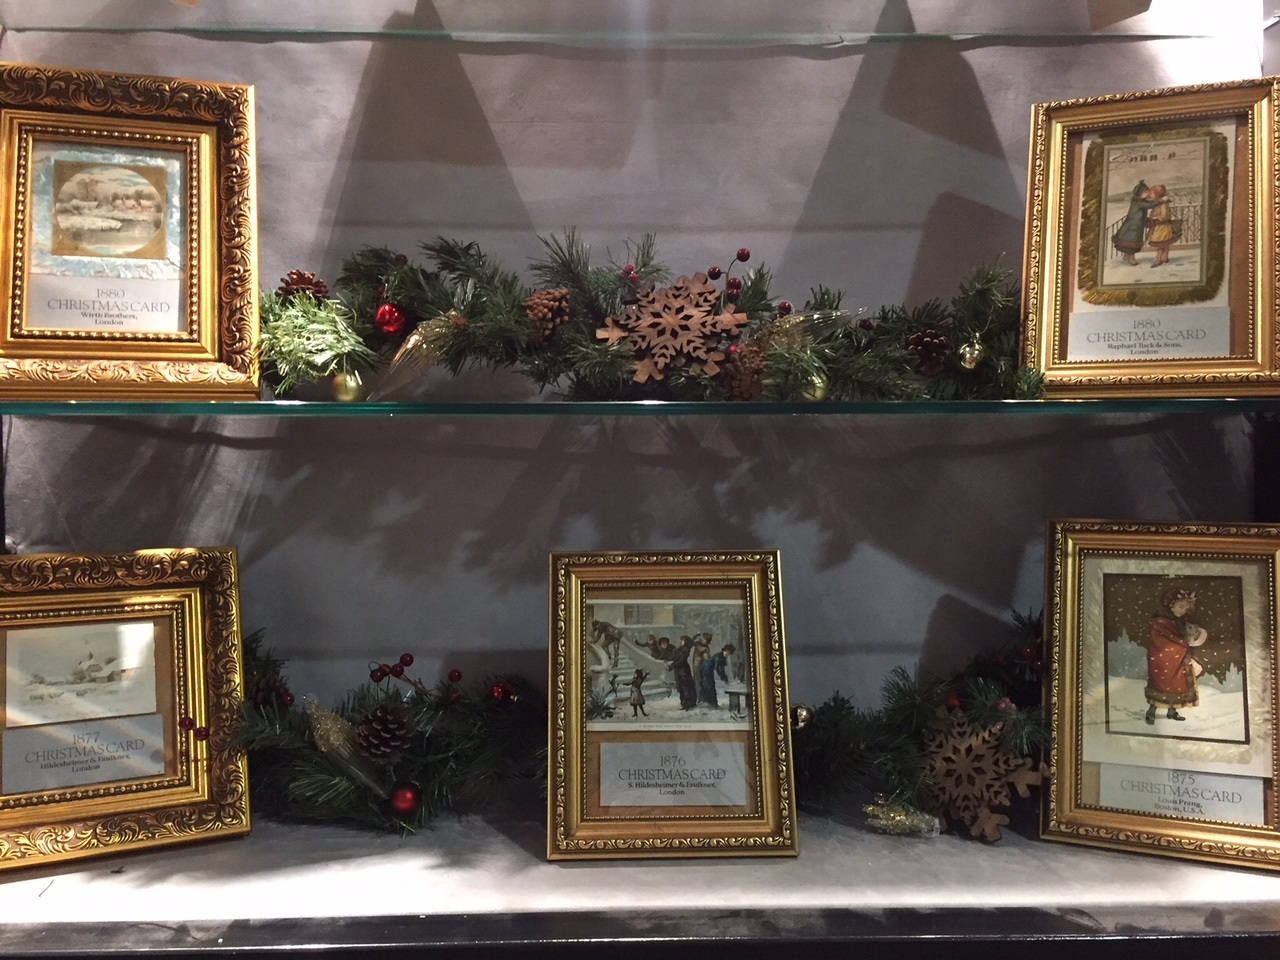 Above: The exhibition includes some actual examples of historic Christmas cards.